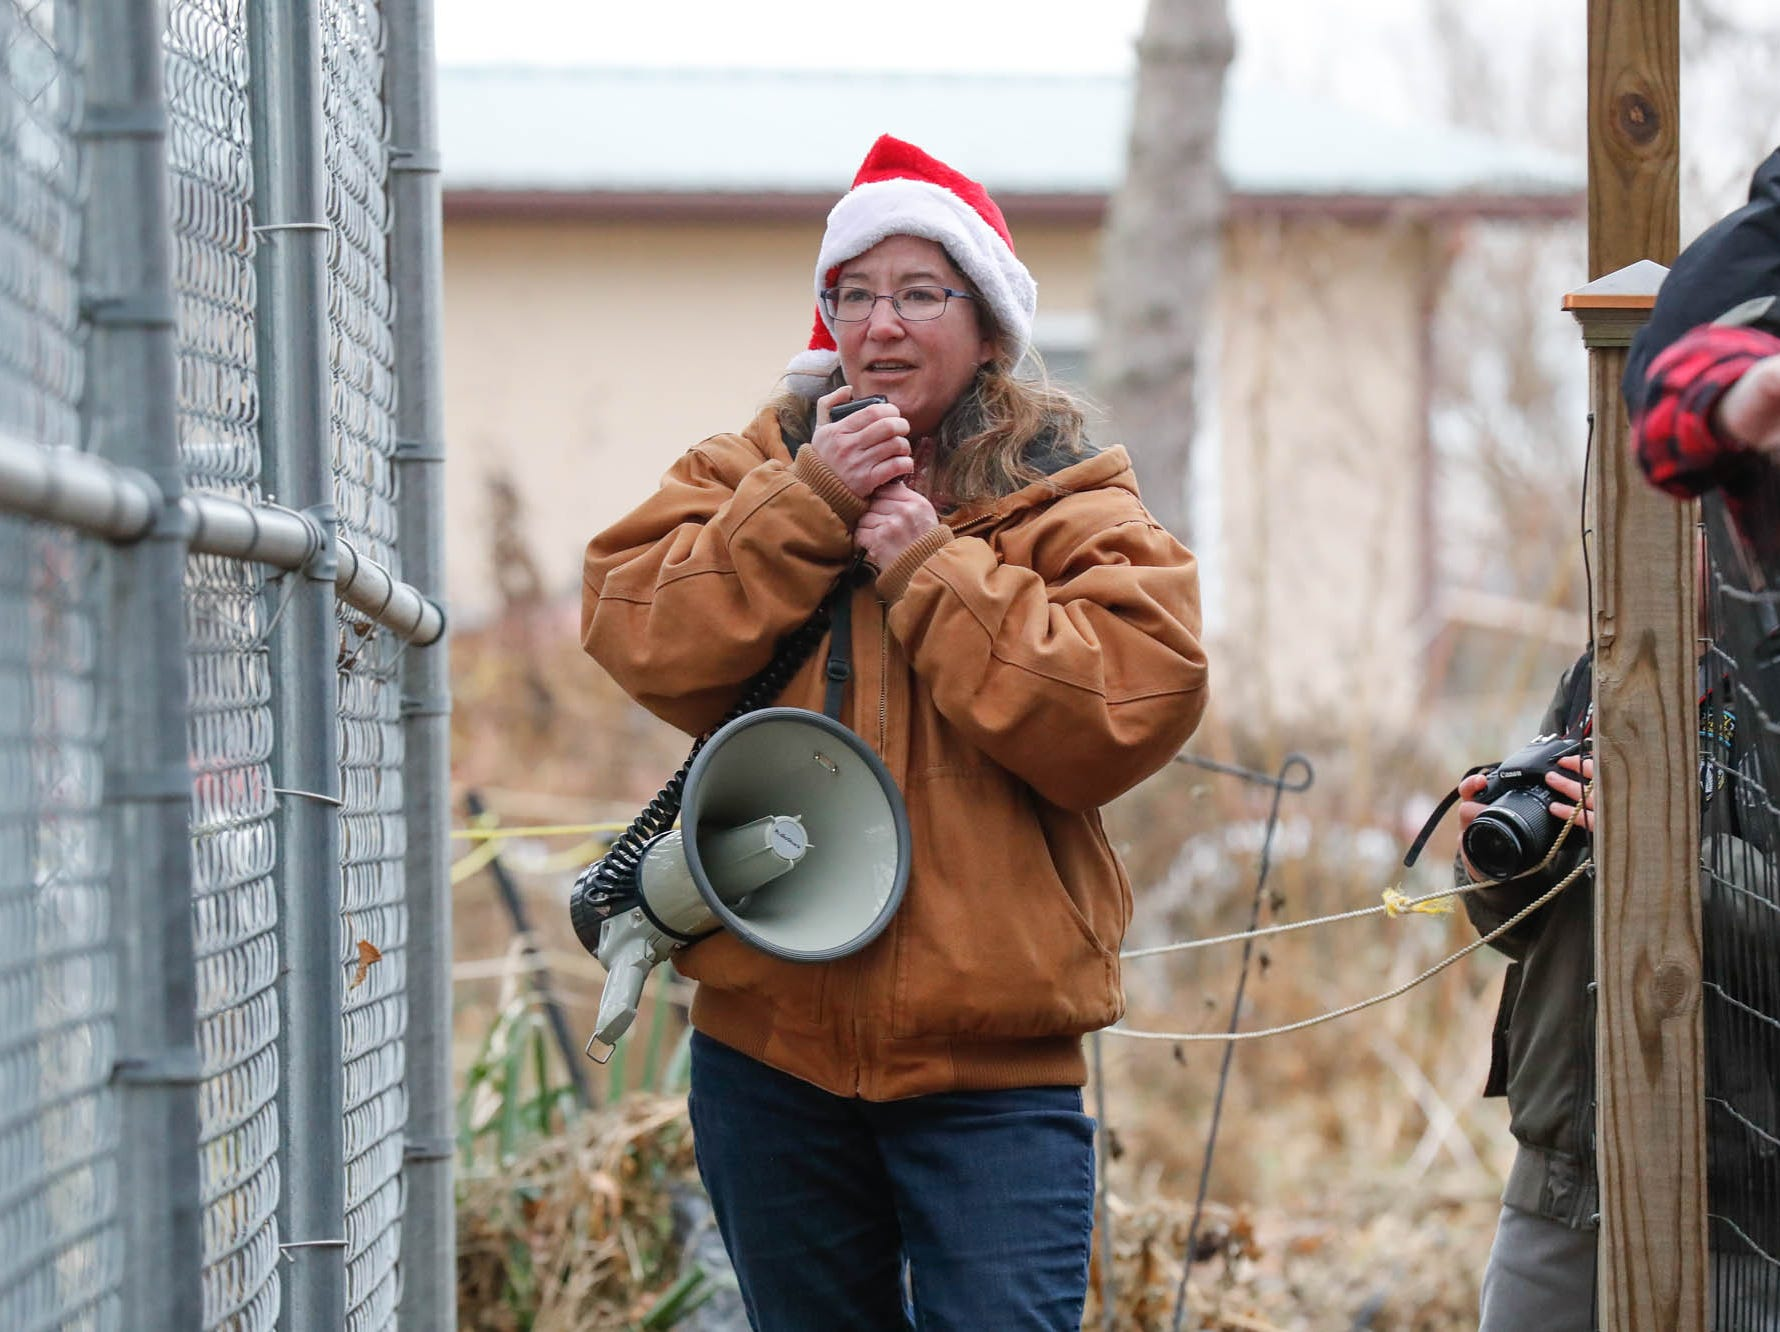 Wolf Park Managing Director, Dana Drenzek leads a holiday tour of Wolf Park during Santa's annual visit in Battle Ground Indiana on Saturday, Dec. 15, 2018.